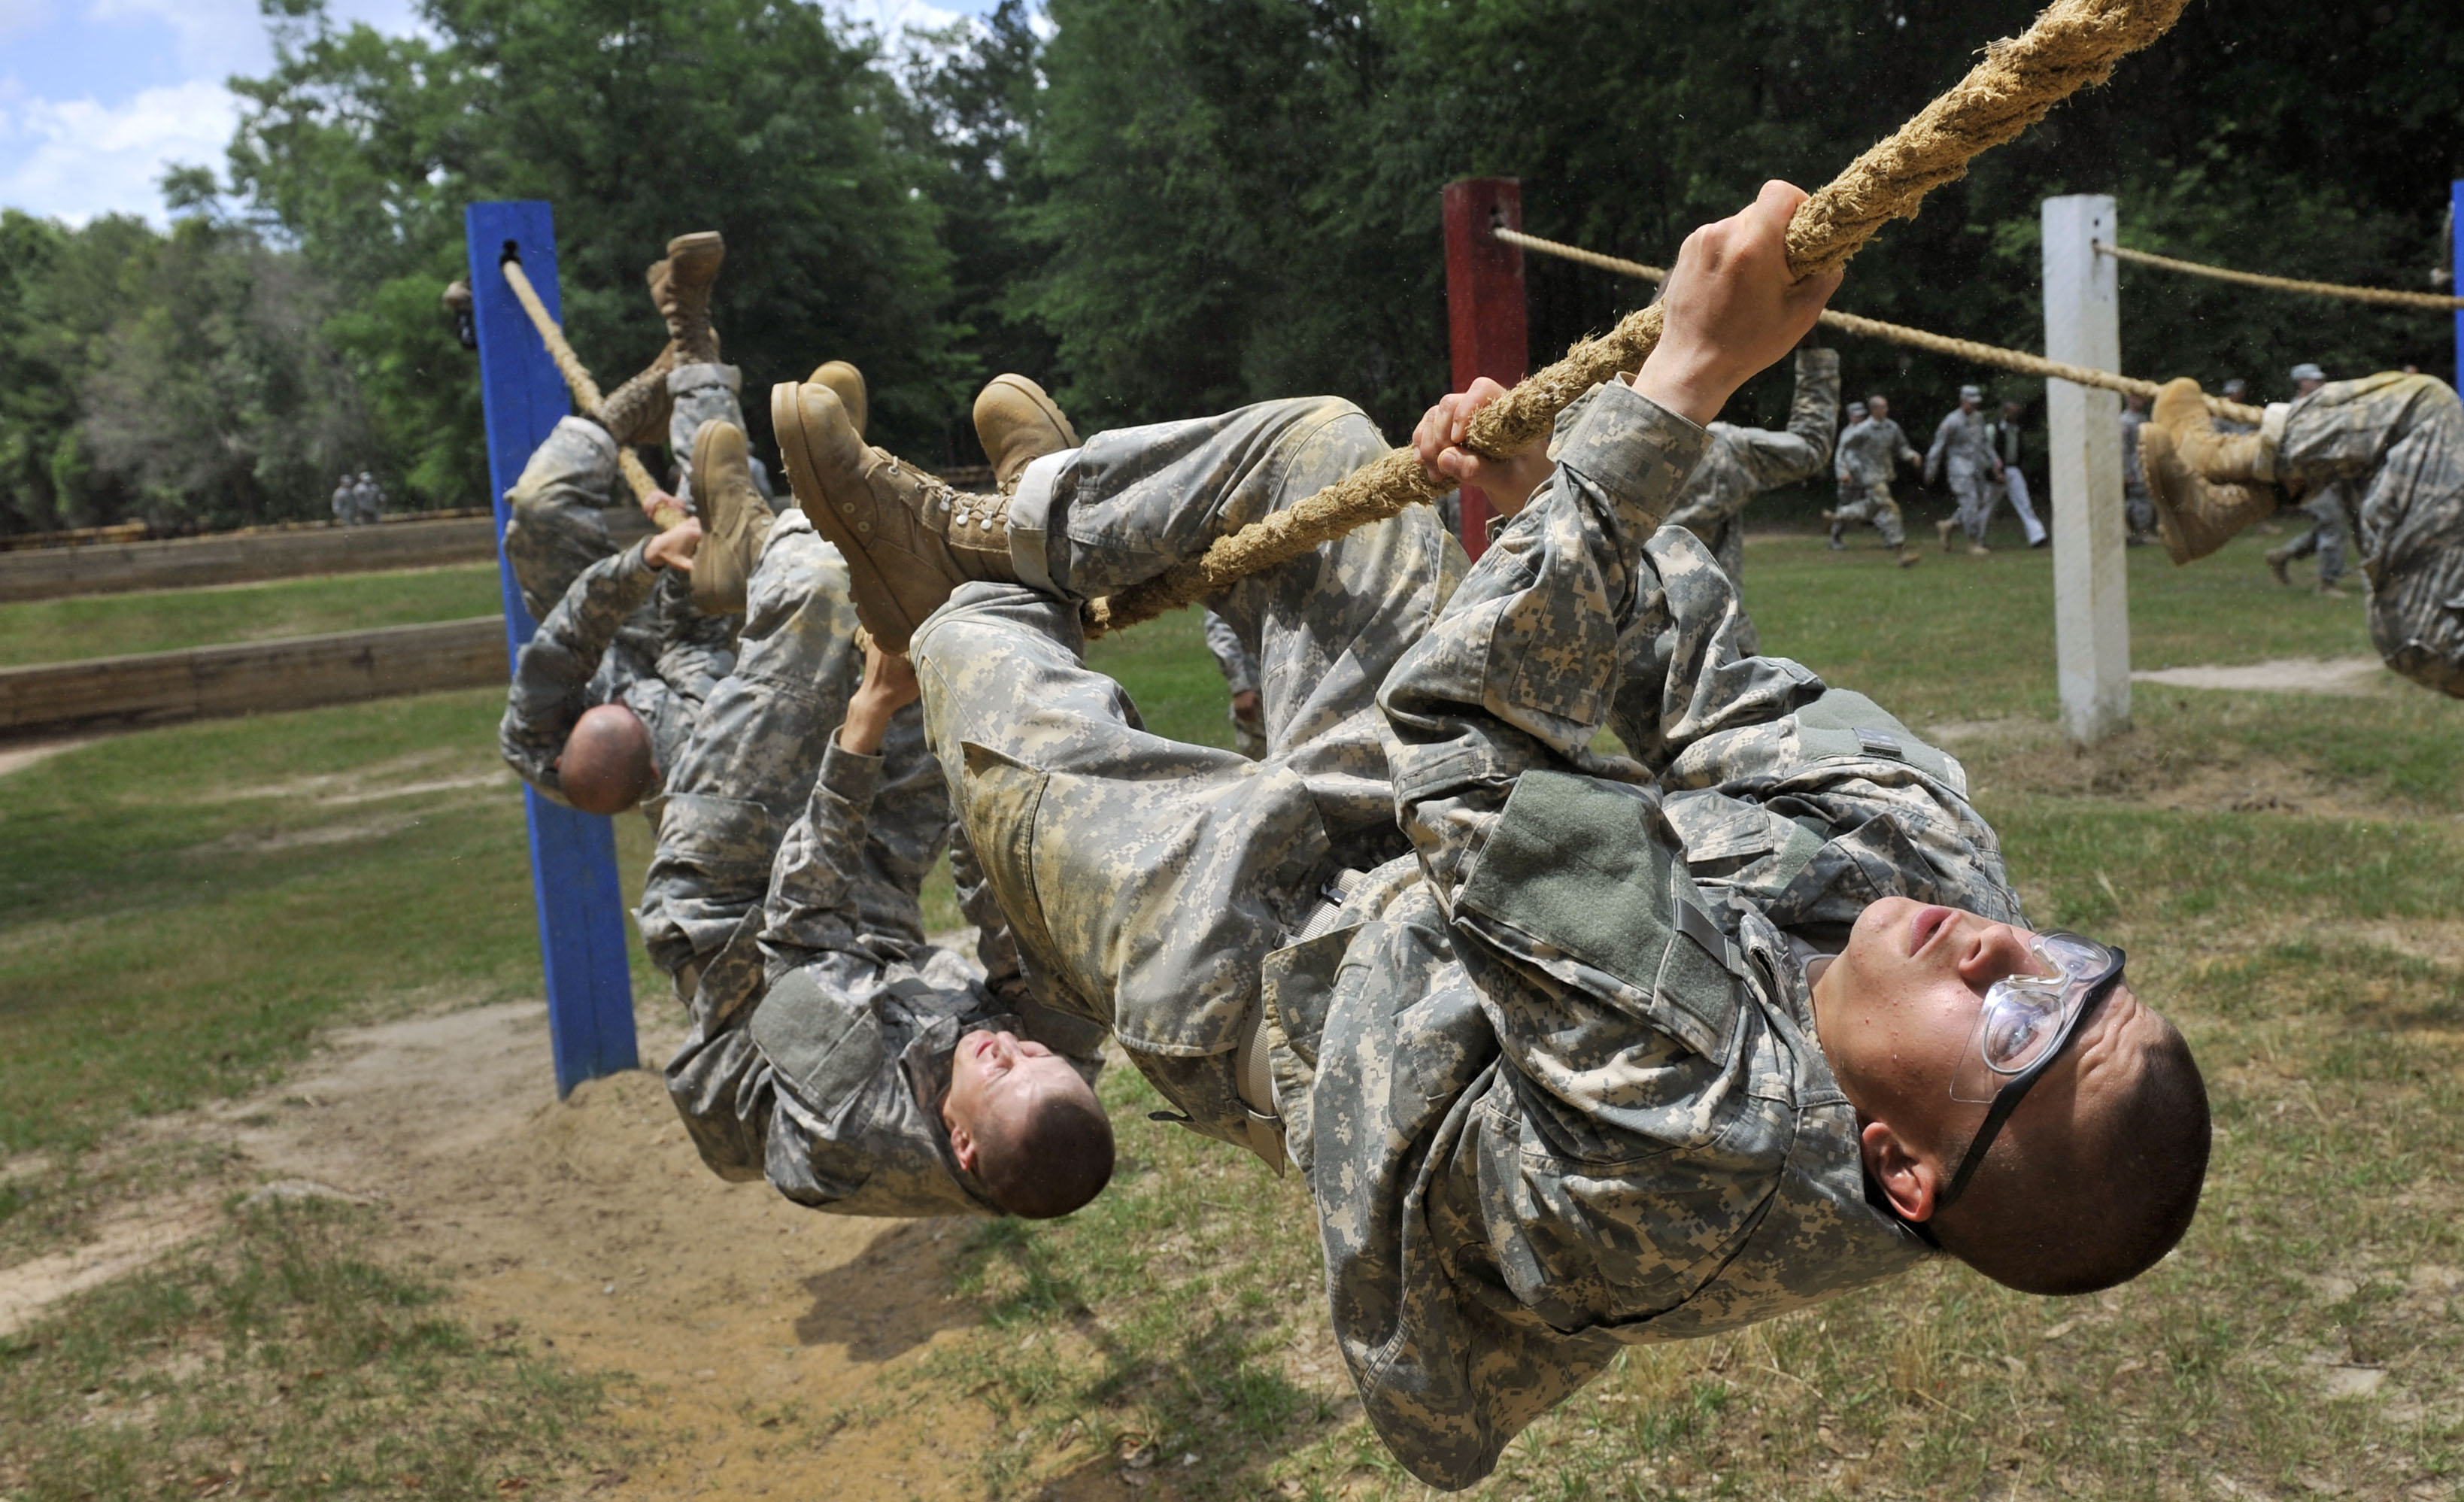 https://upload.wikimedia.org/wikipedia/commons/6/6e/Army_soldiers_run_through_an_obstacle_course_at_Ft._Benning.jpg